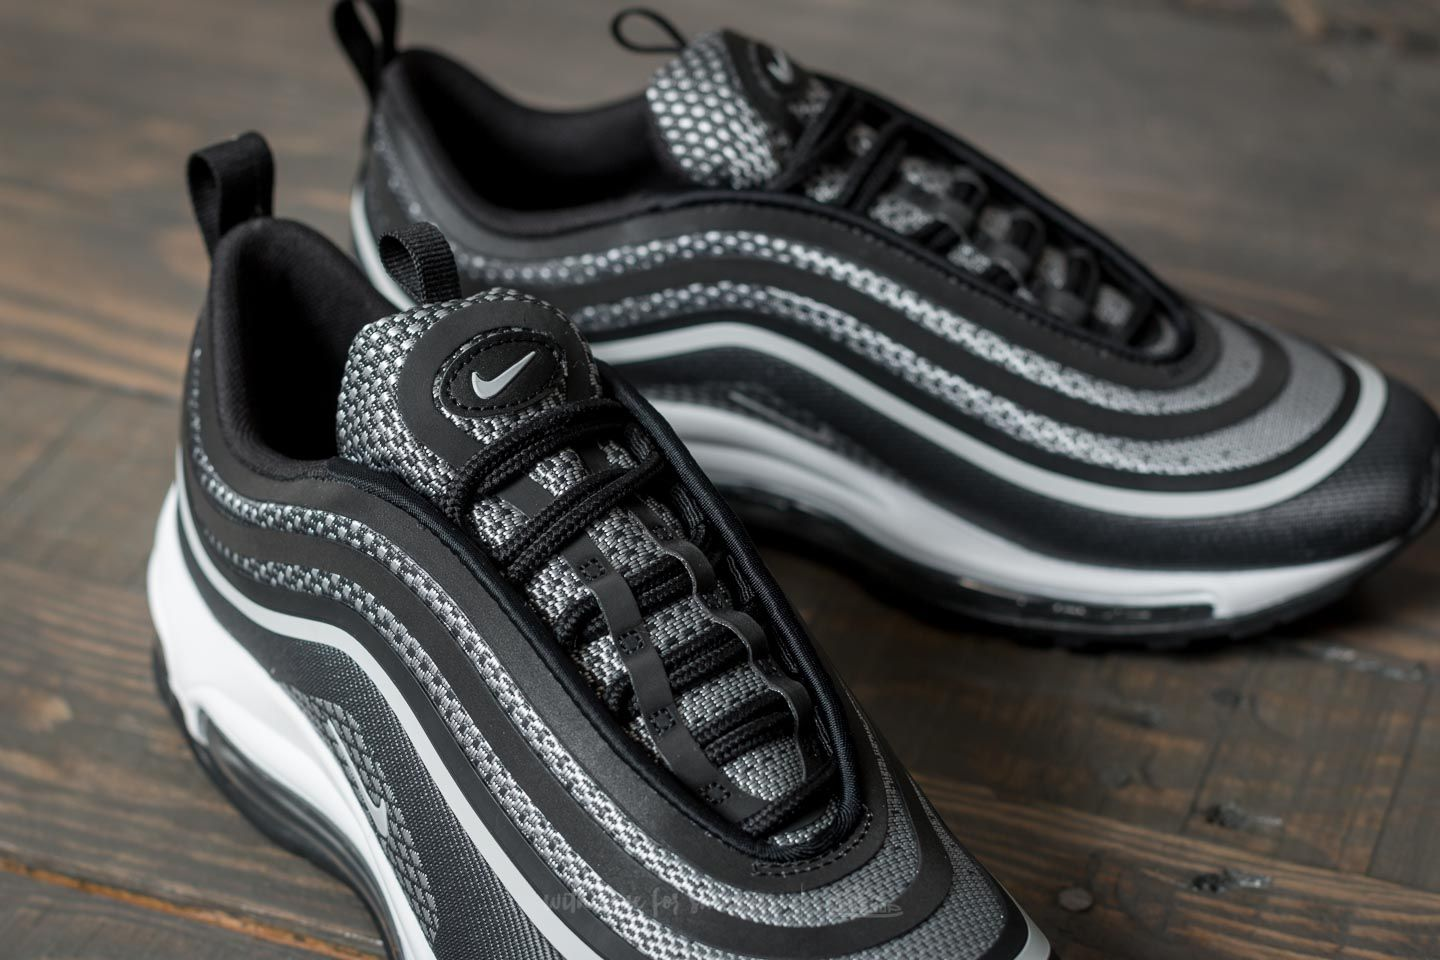 Nike Air Max 97 Black Pure Platinum